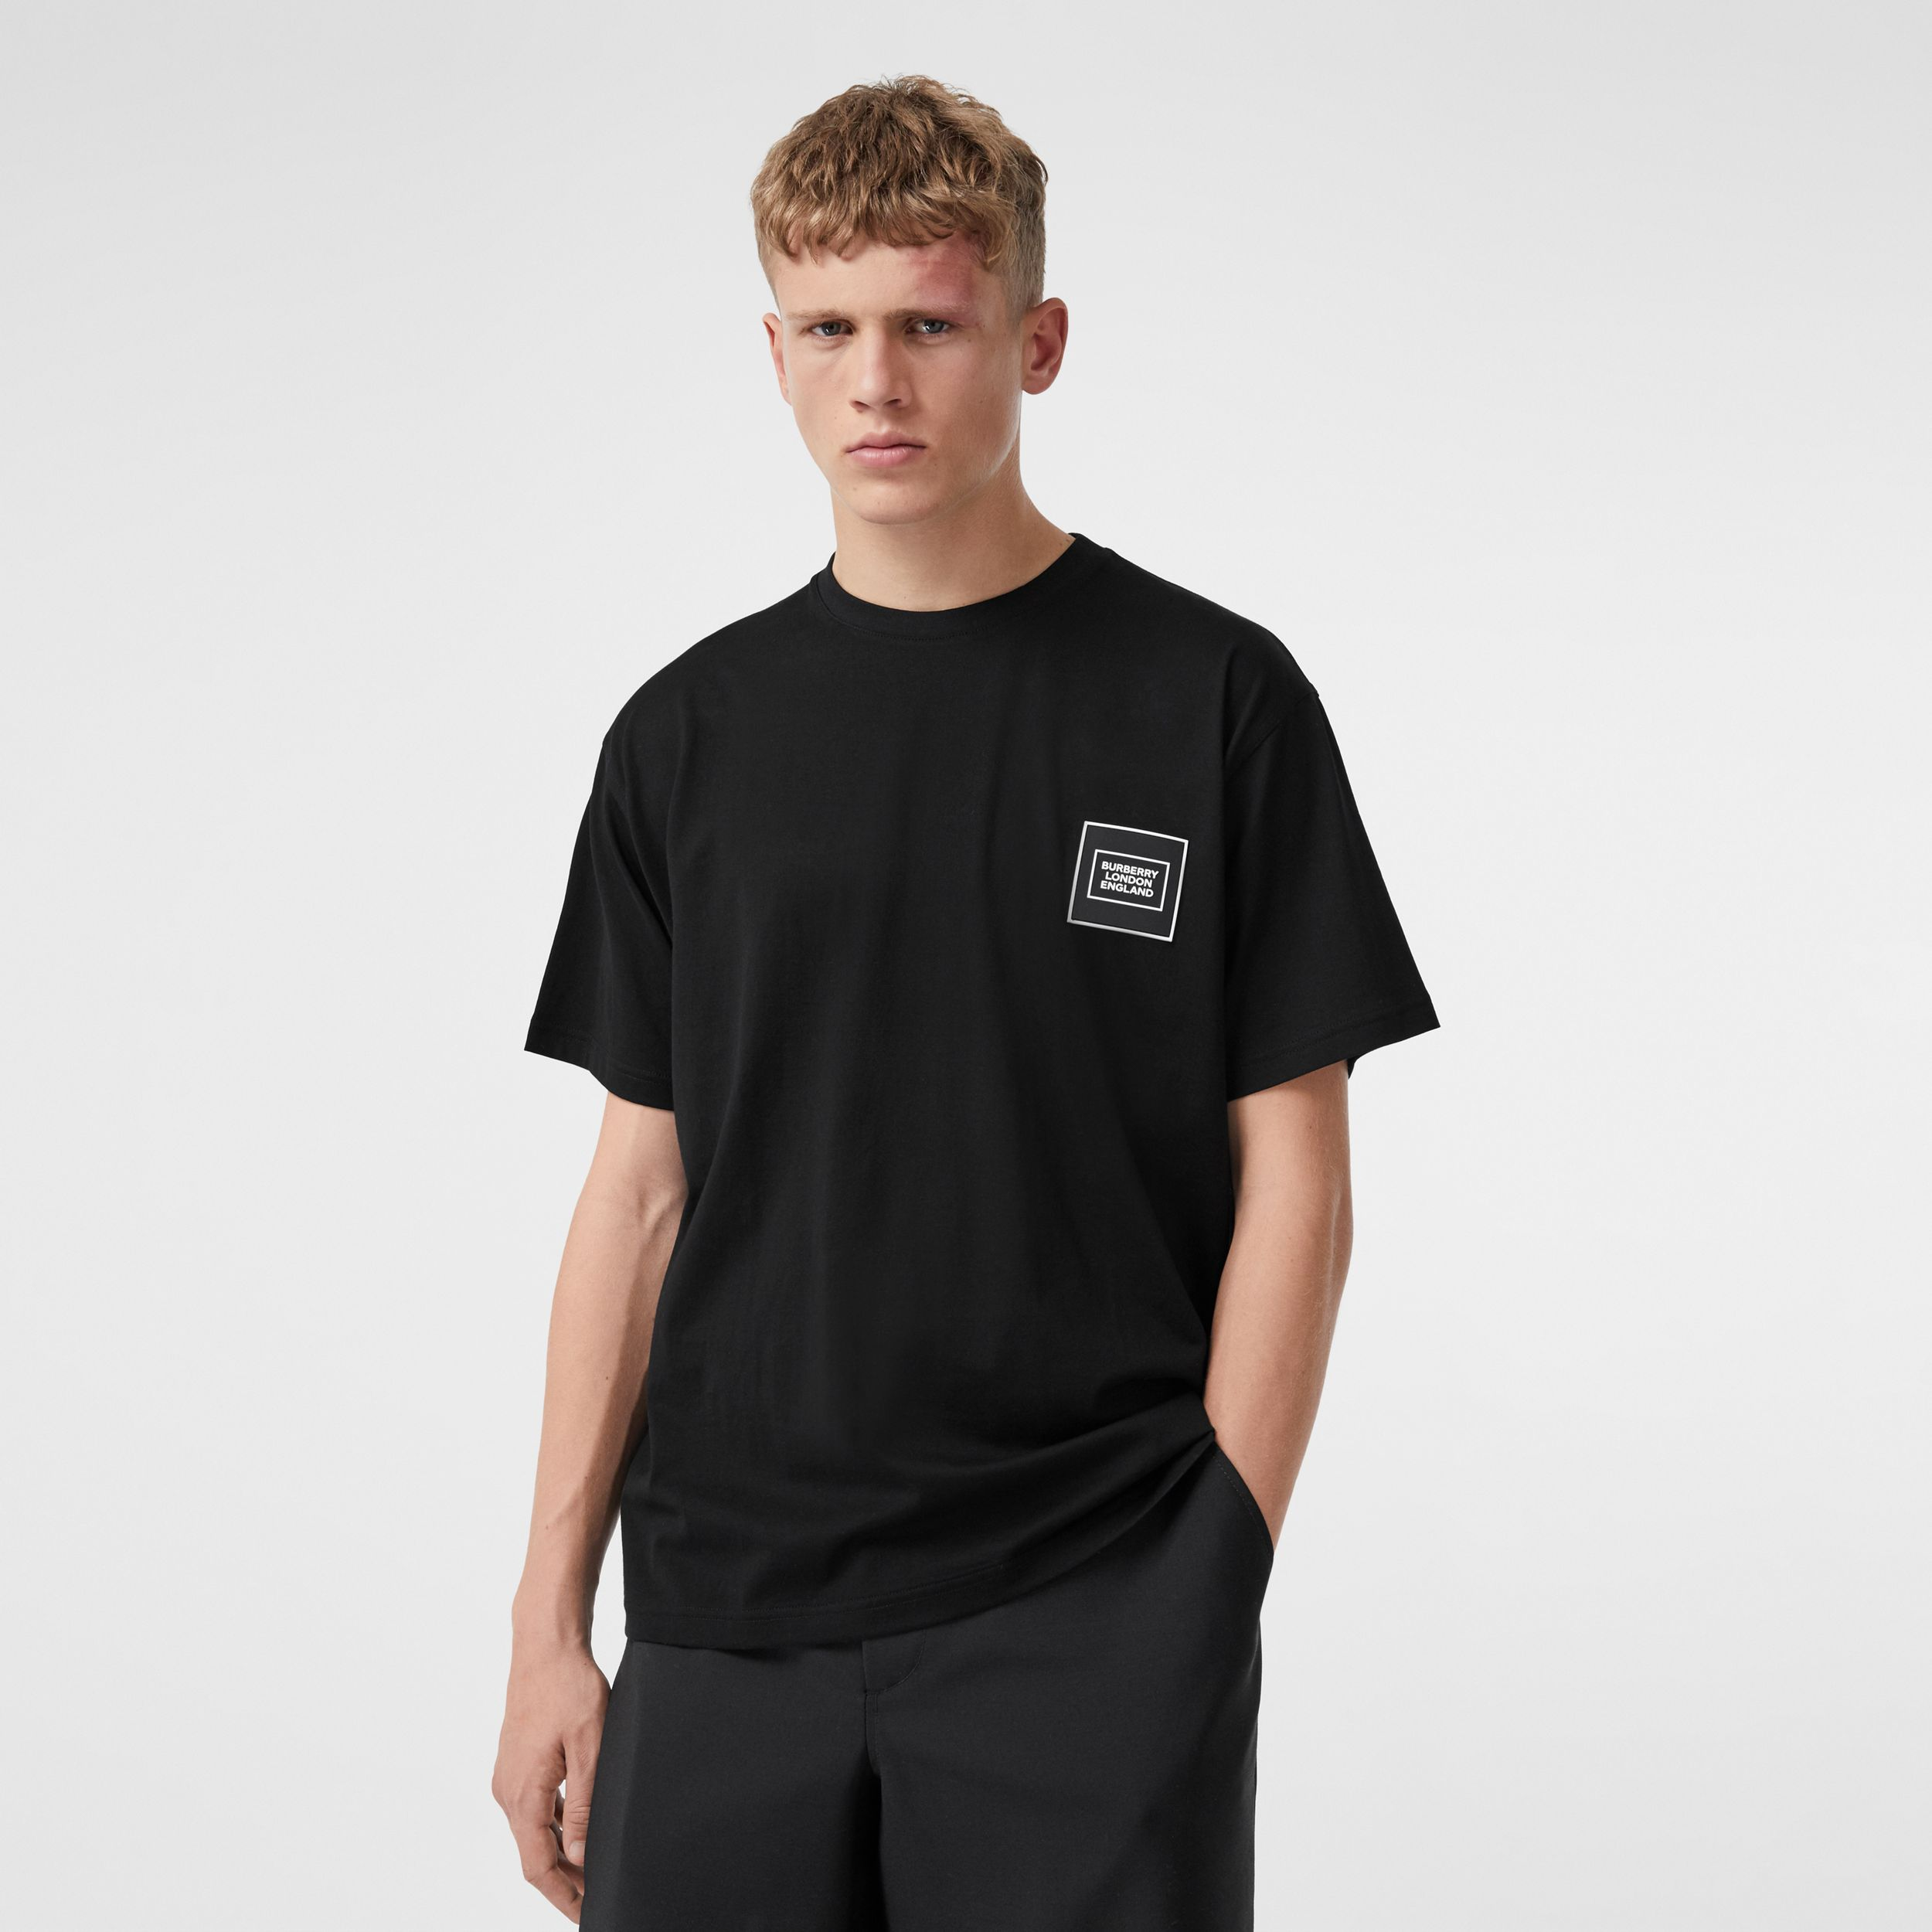 Logo Appliqué Cotton T-shirt in Black - Men | Burberry - 1